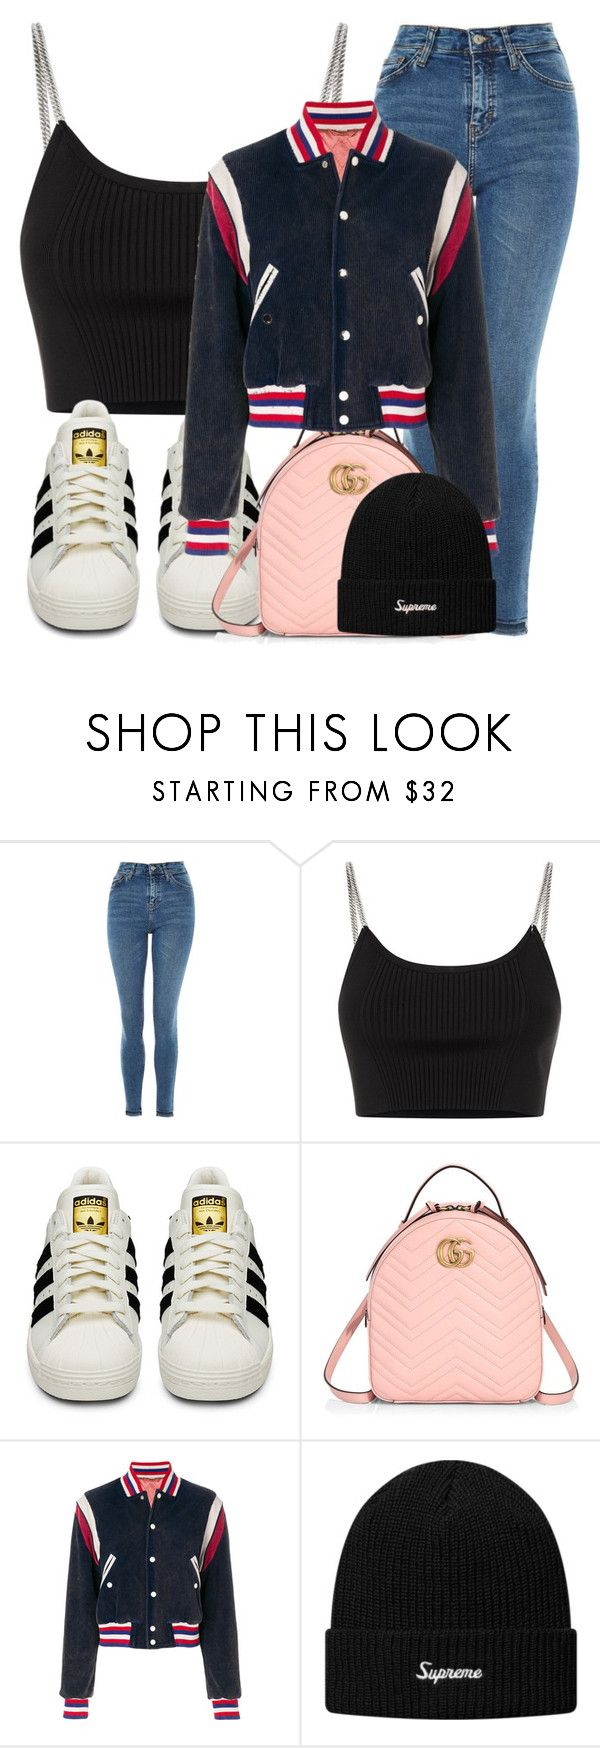 """zaylee; the youngest."" by inlovewith4idiots ❤ liked on Polyvore featuring Topshop, Alexander Wang, adidas and Gucci"